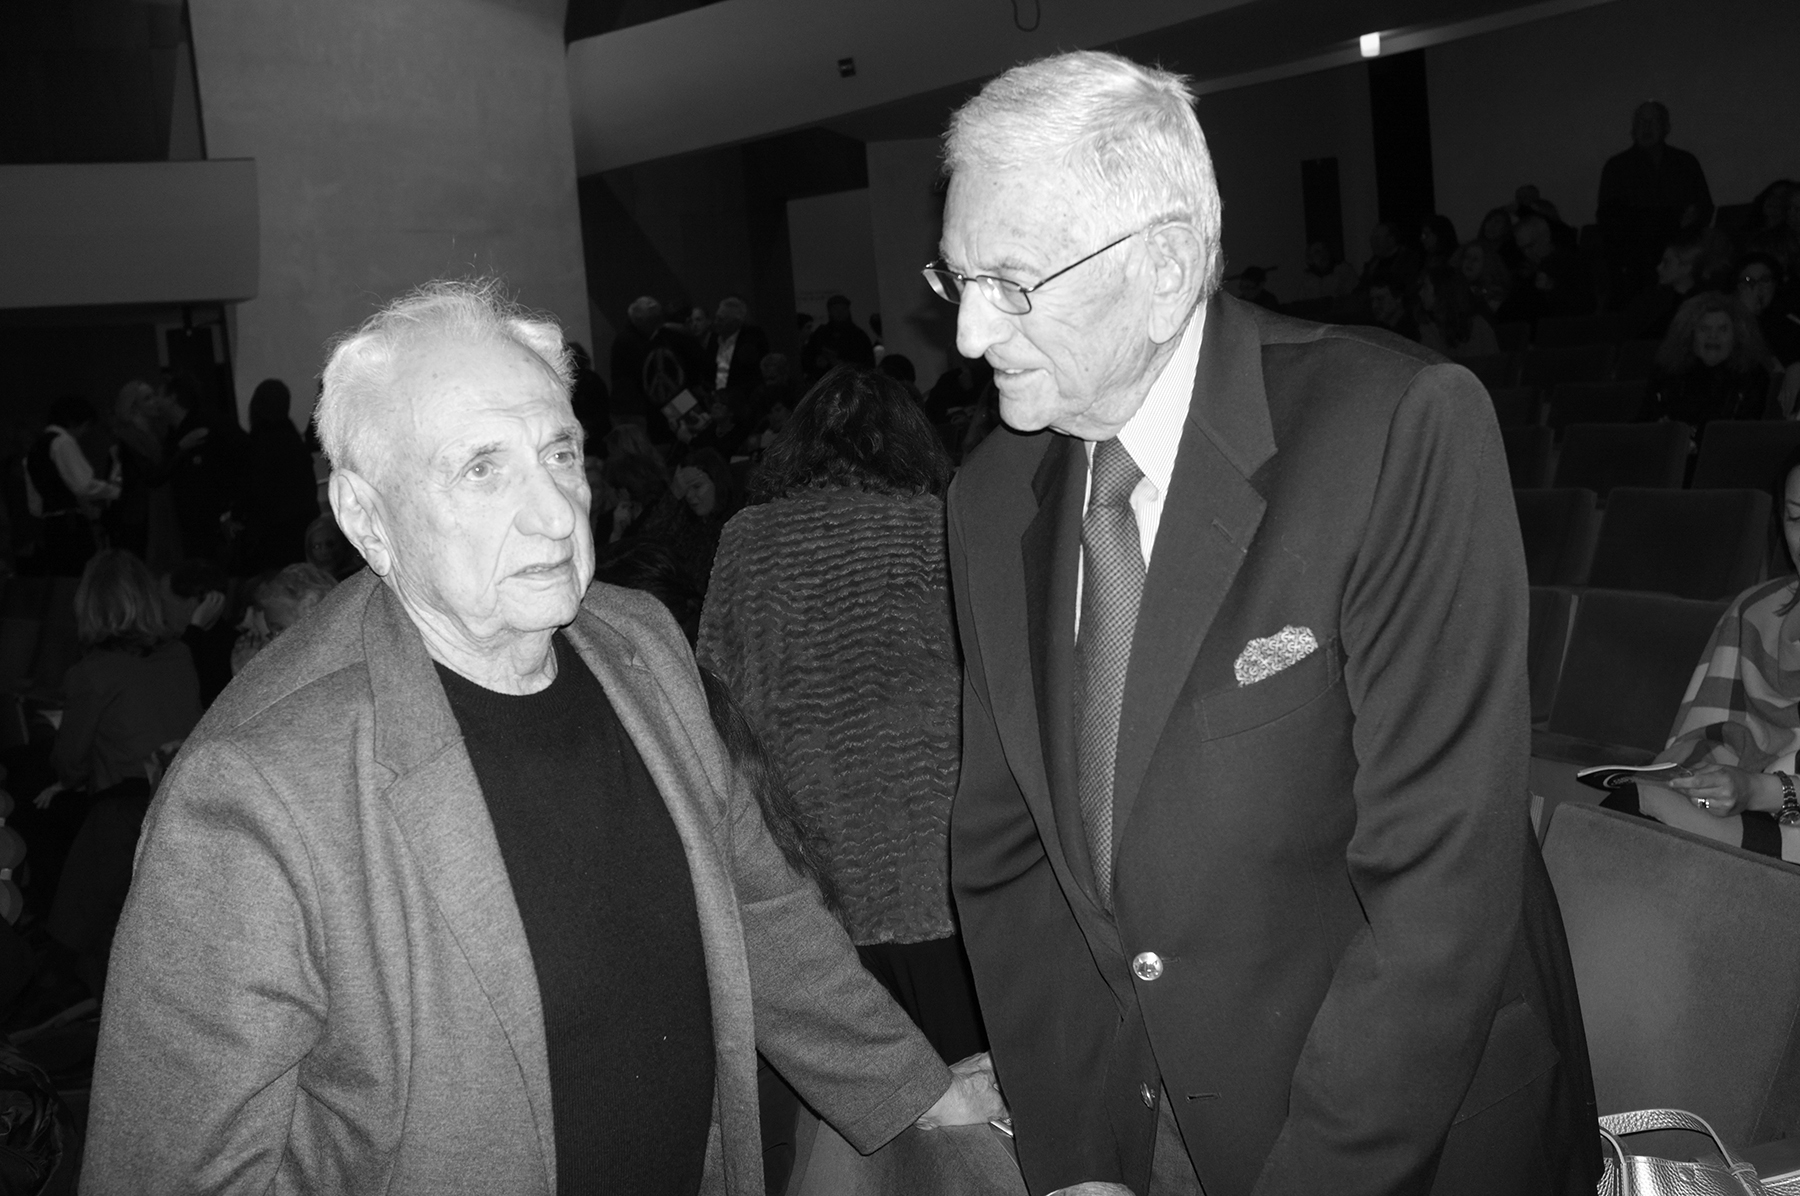 Frank Gehry and Eli Broad